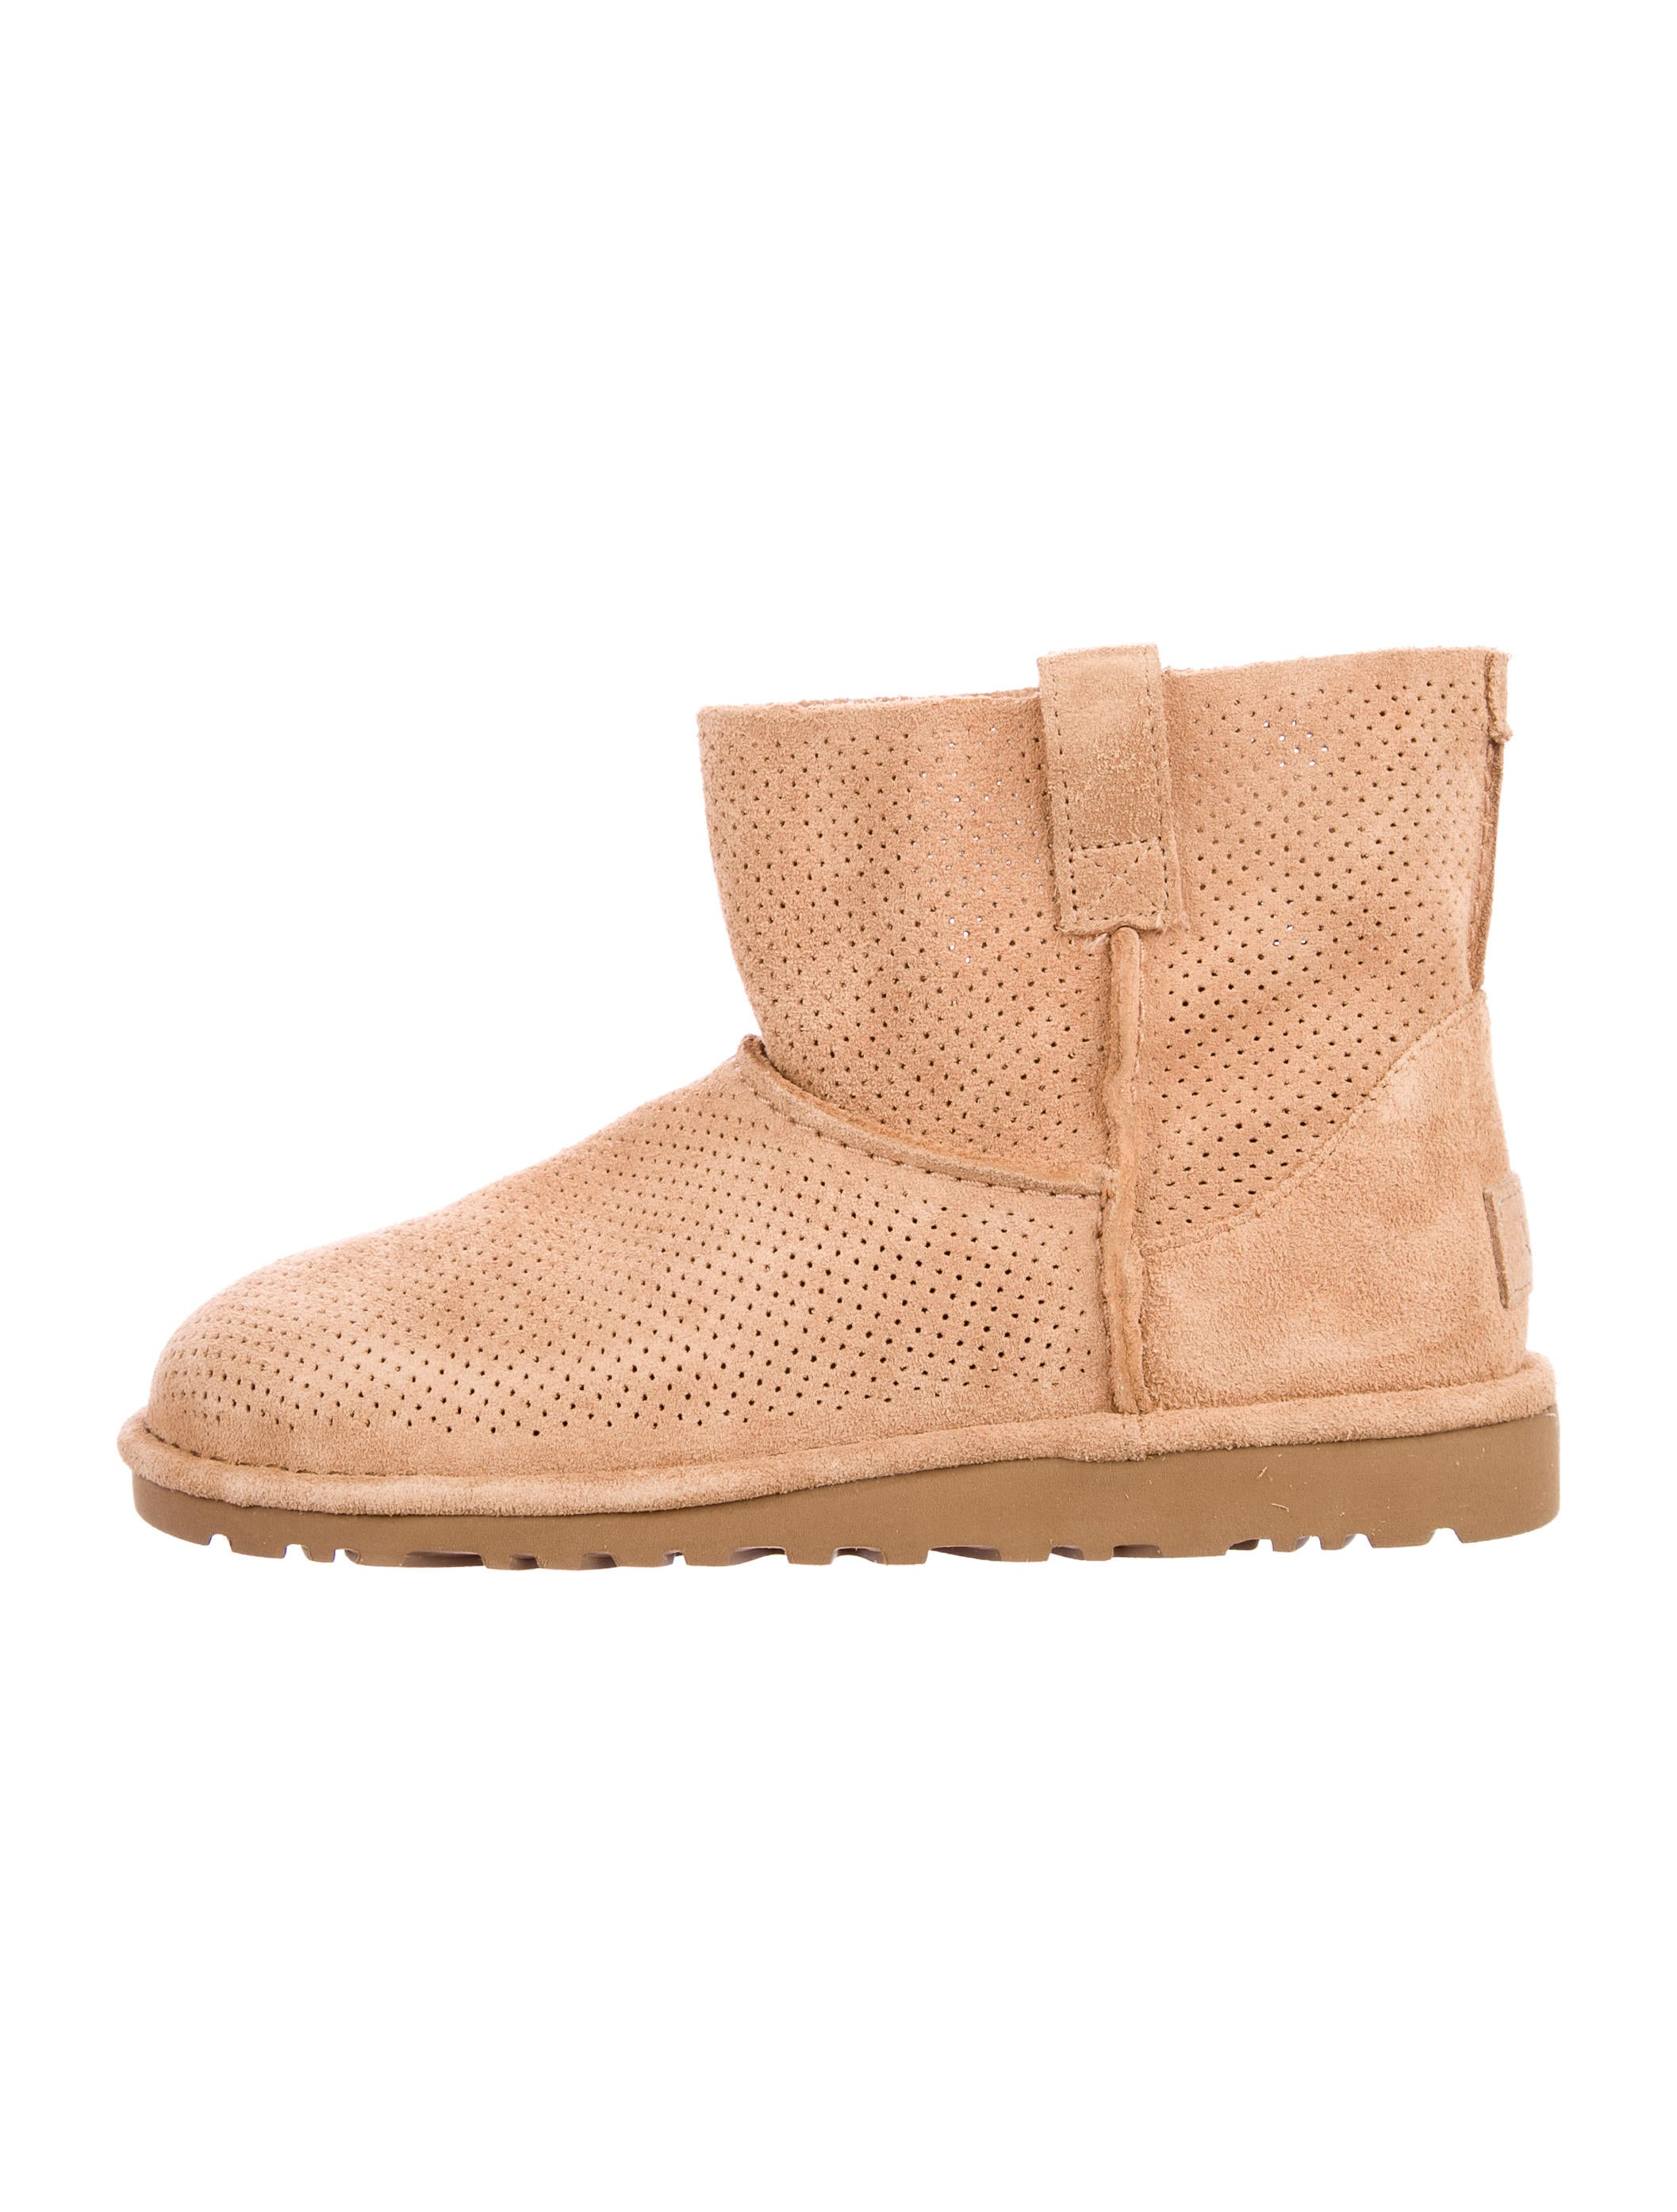 UGG Australia Perforated Suede Booties w/ Tags big discount for sale z1xw4t